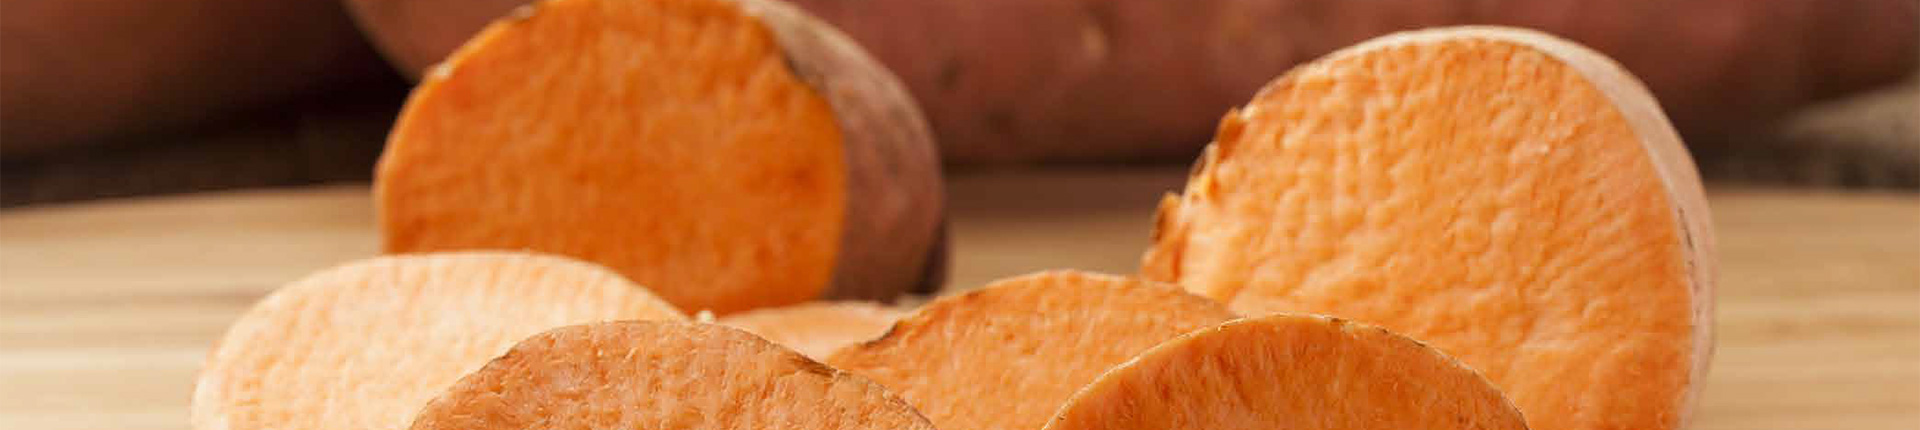 Our Sweet Potatoes Banner